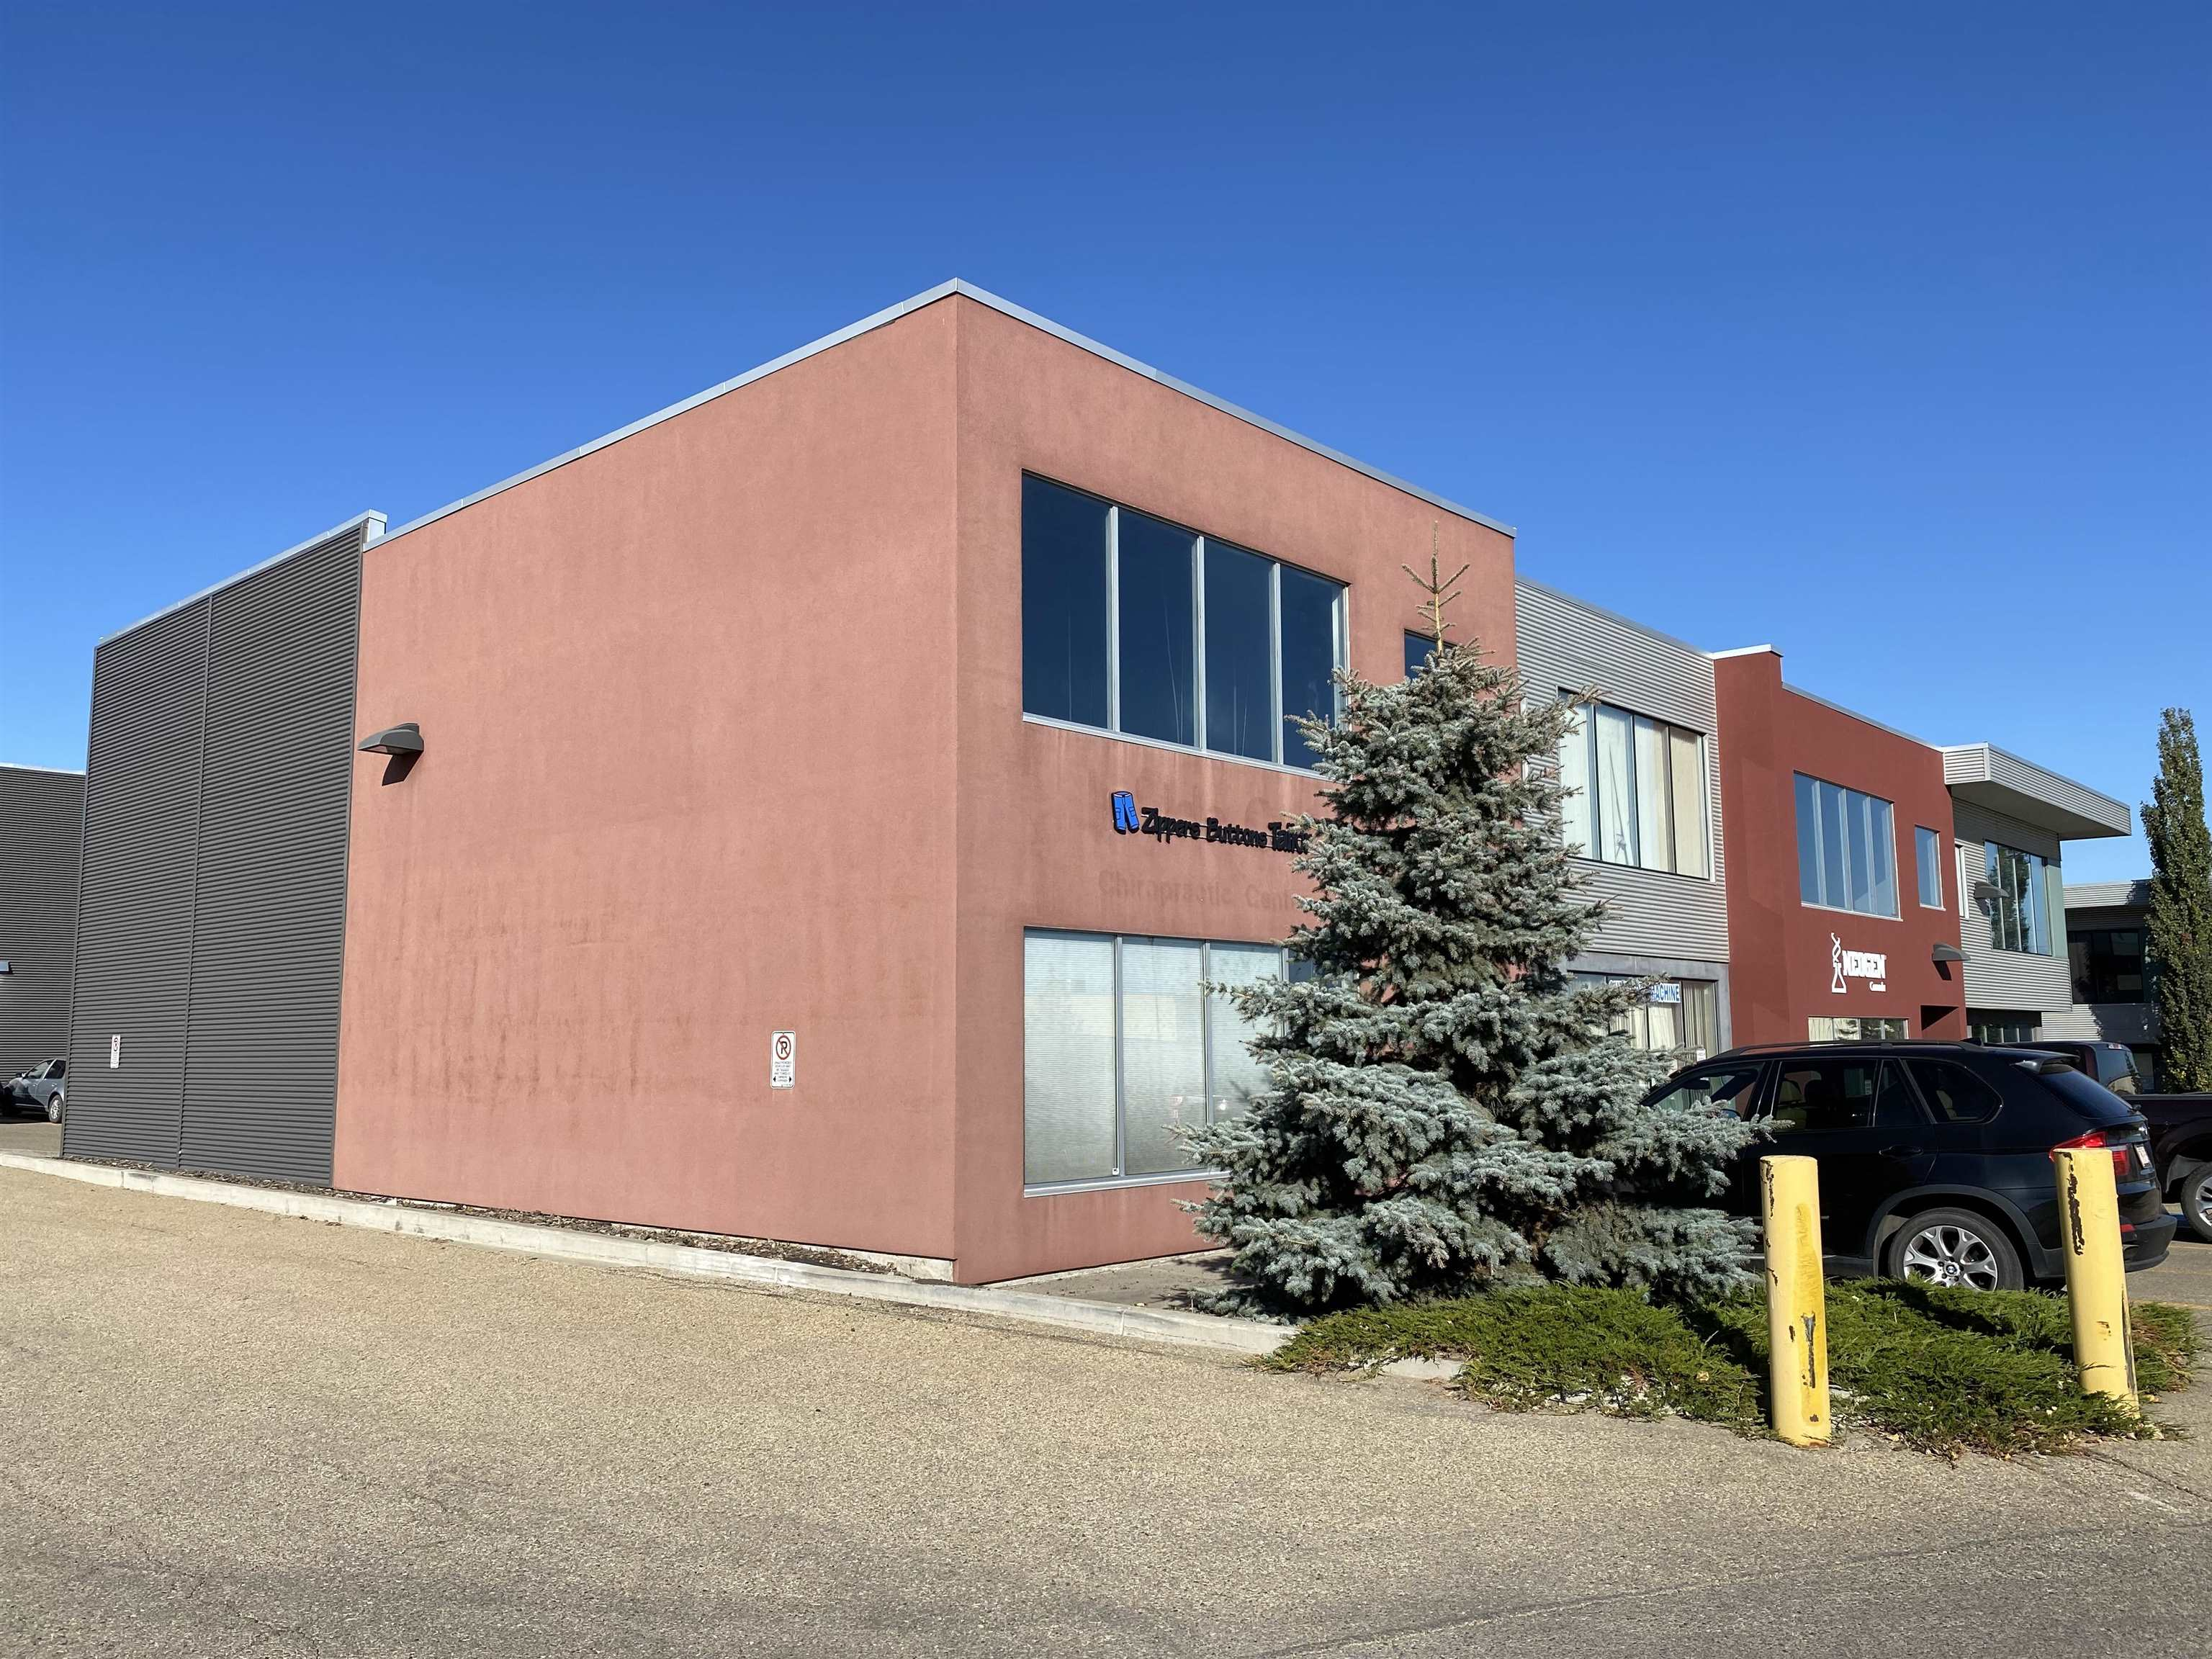 Retail Property for Sale, MLS® # E4265643